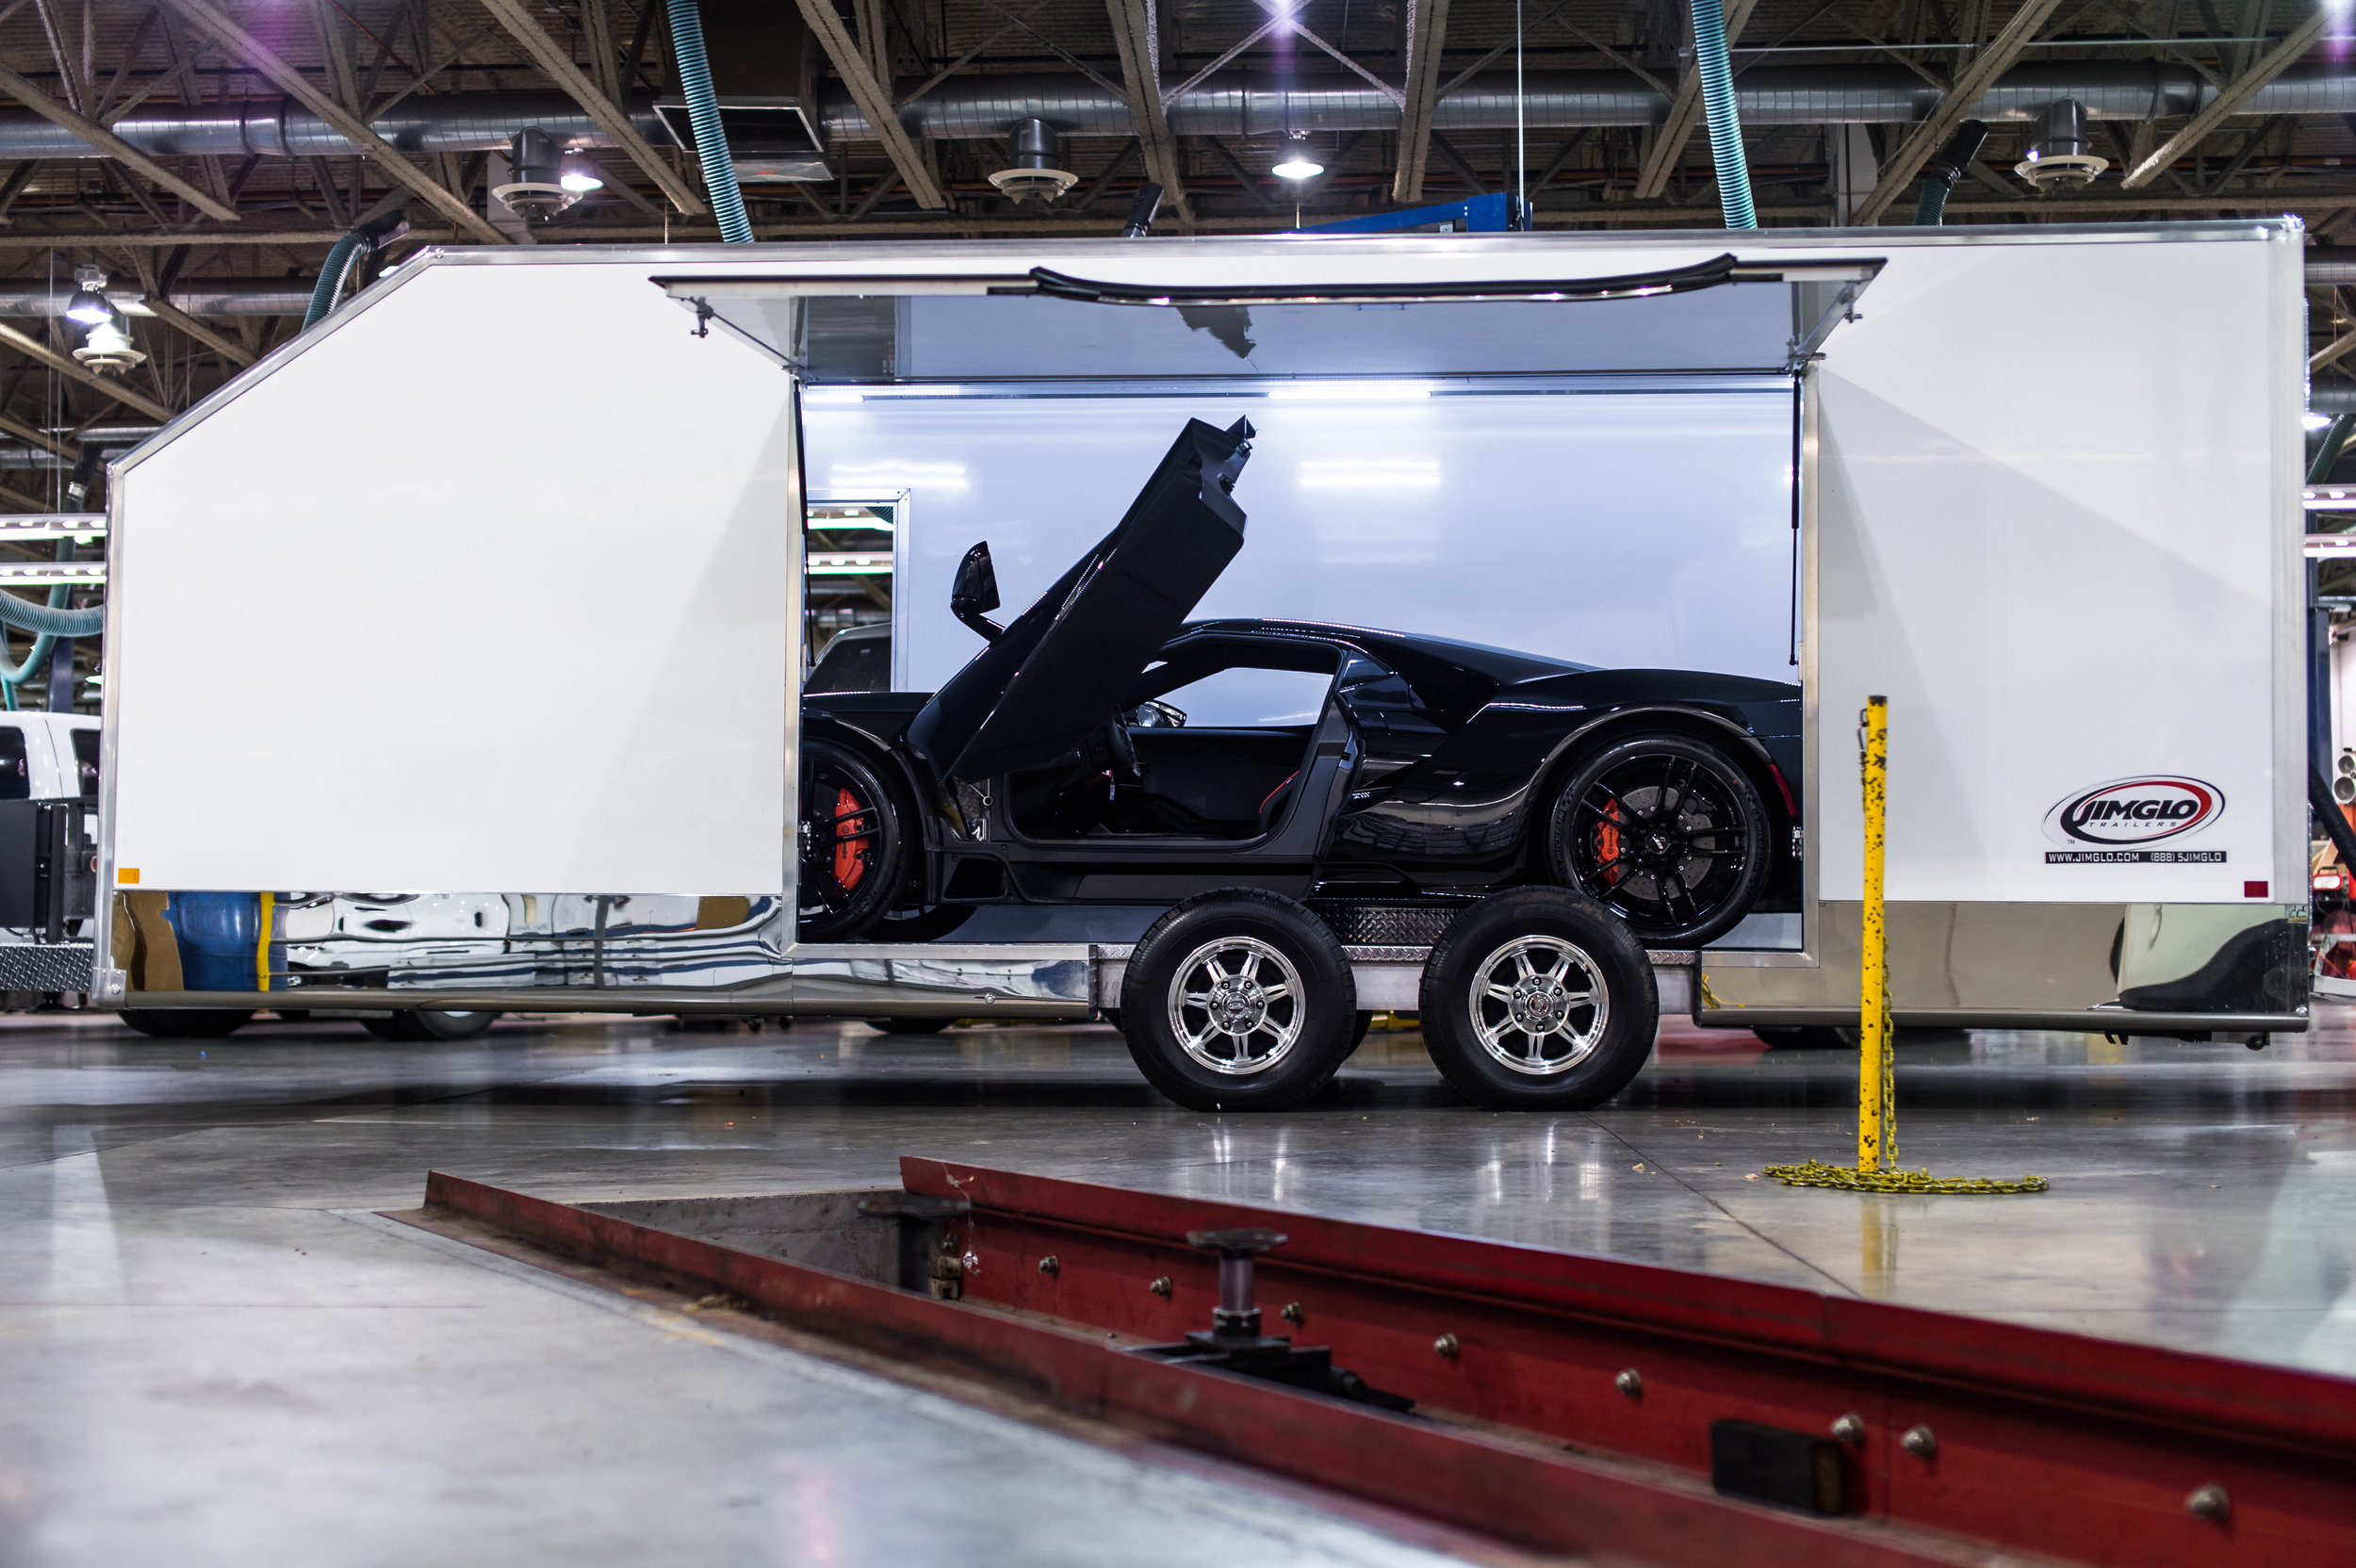 """FUELED BY DESIGN - """"We looked at multiple different options, but JIMGLO's ramp design and unique side hatch offered maximum protection for the GT, while ensuring easy driver exit during loading"""" explained Kurt Kiser, Parts and Service Program Manager for the Ford GT. """"This trailer is the perfect complement to the no-compromises GT."""""""